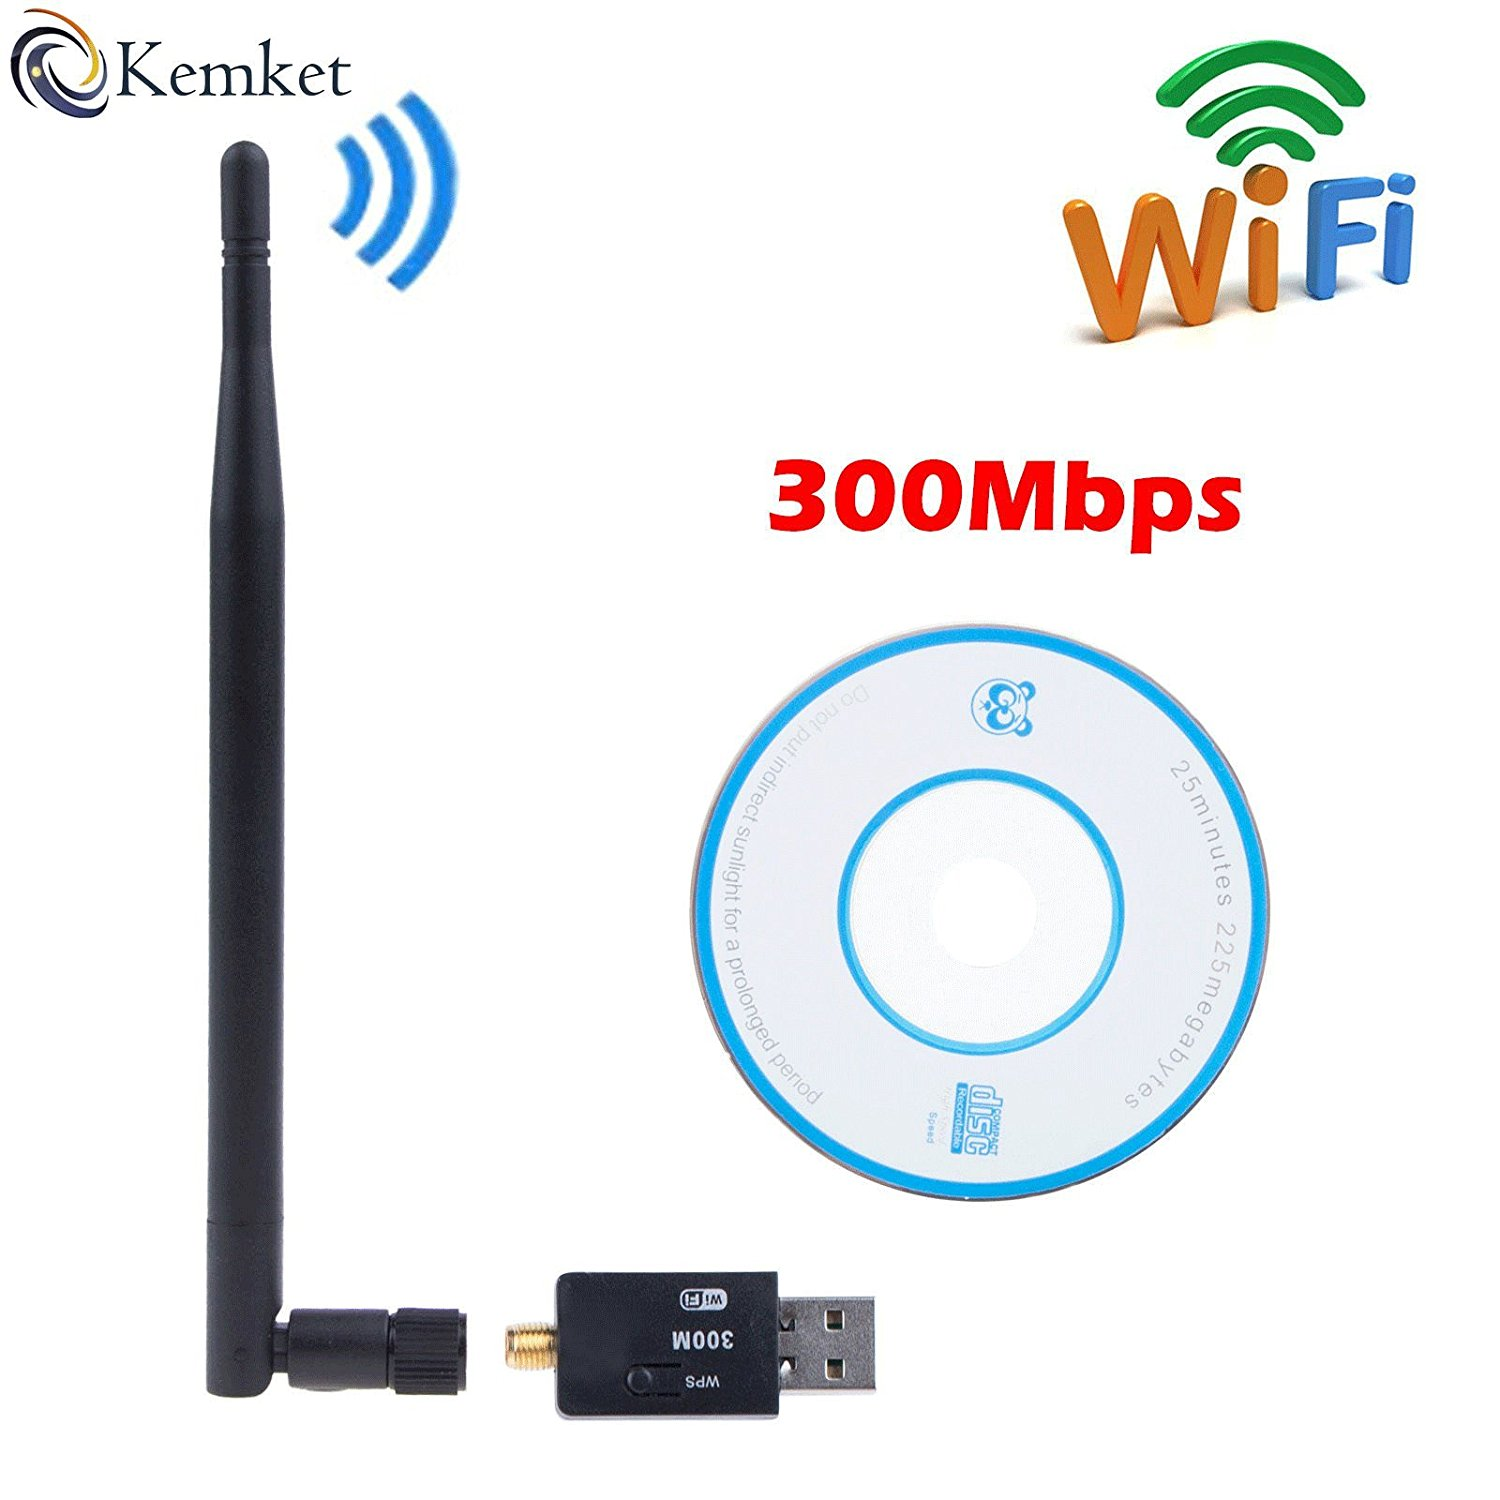 Kemket WiFi USB Adapter- 300 mbps, 150mbps with antenna / Wireless LAN / USB 2.0 Adaptor / Mini Dongle 802.IIN / SMA connection / works with PC + MAC | for Win 10 / Win 8 / Win 7 / OSx (300 Mbps)